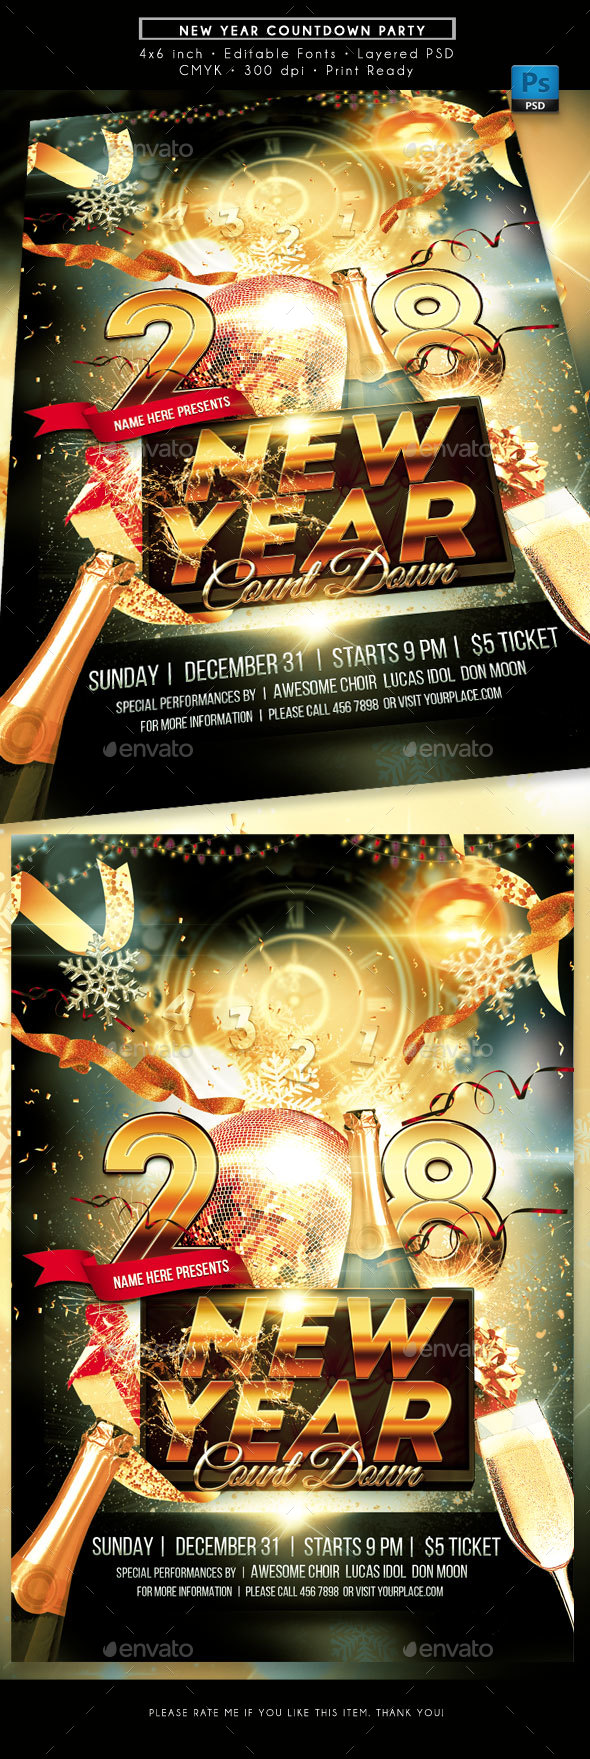 GraphicRiver New Year Countdown Party Flyer 21146984